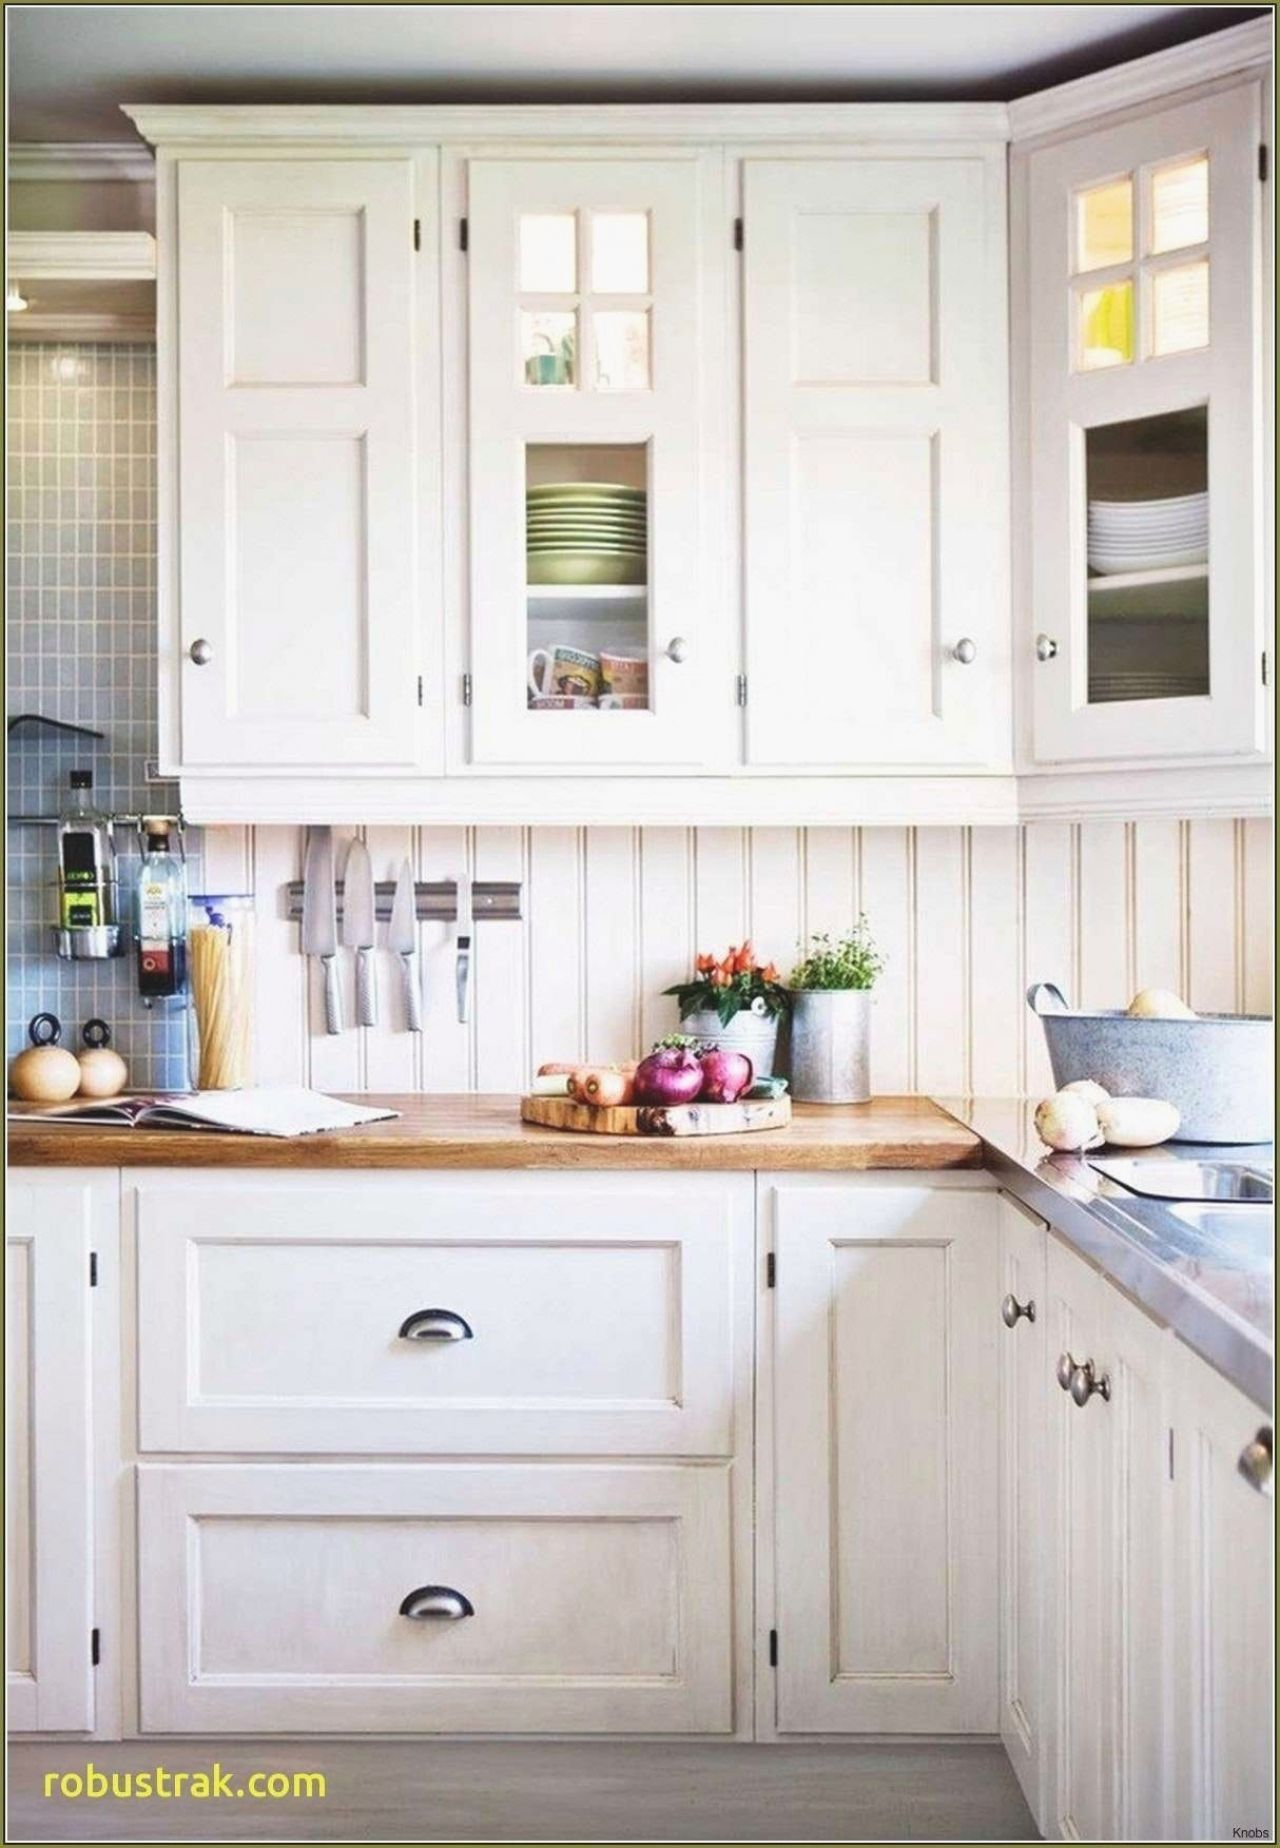 Kitchen Cabinet Replacement Shelves Cabinet Kitchen Replacement Shelves In 2020 Cost Of Kitchen Cabinets Rustic Kitchen Cabinets Kitchen Cabinet Doors